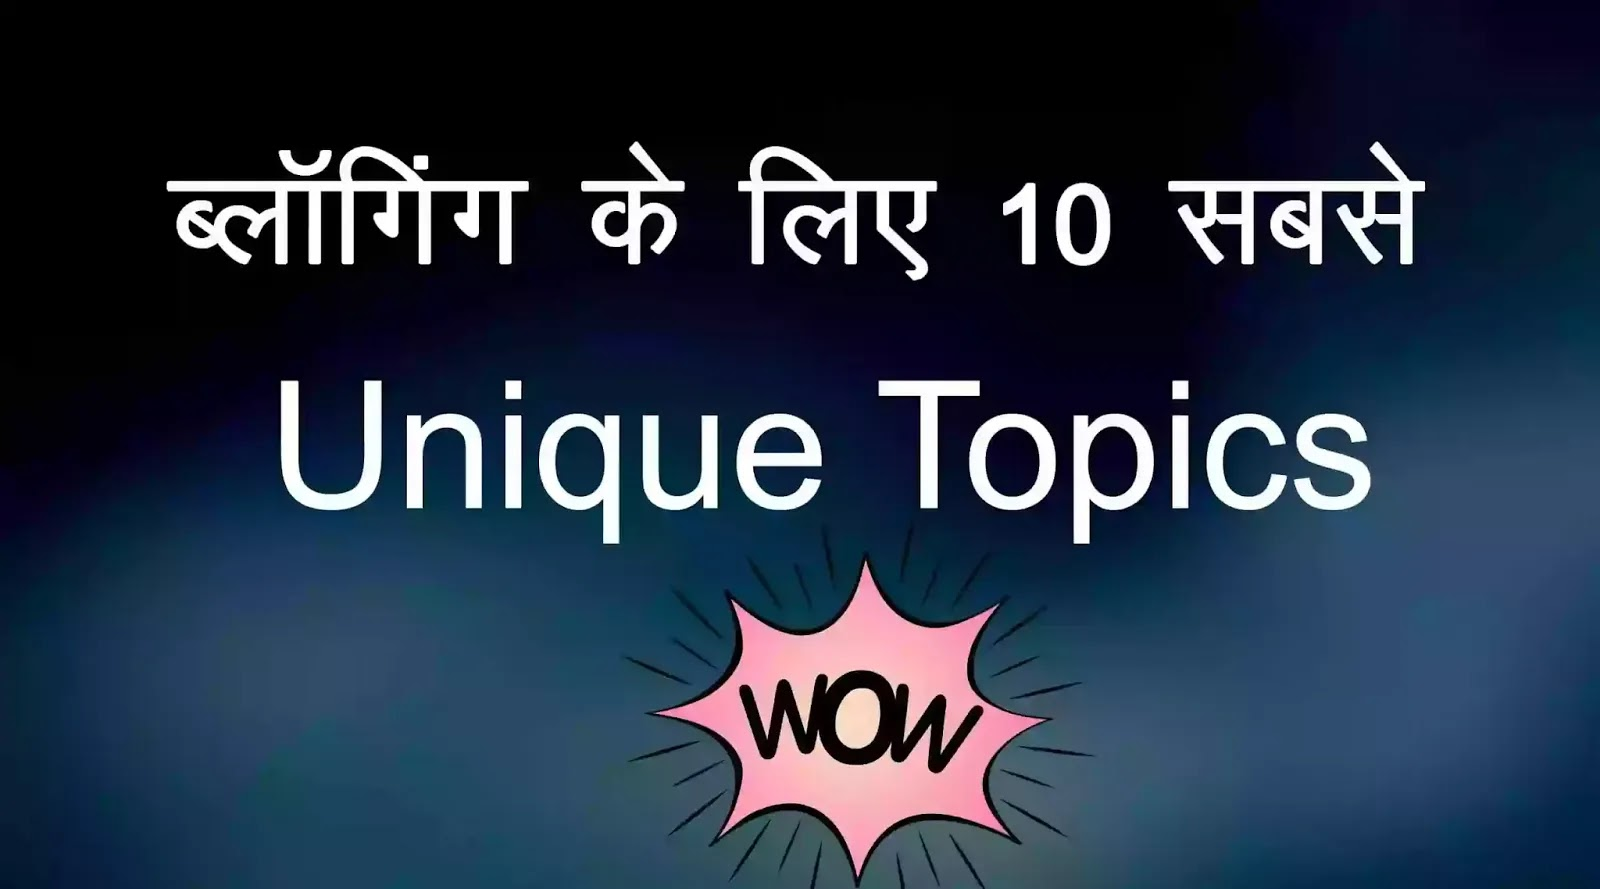 best topic for blogging in india 2020